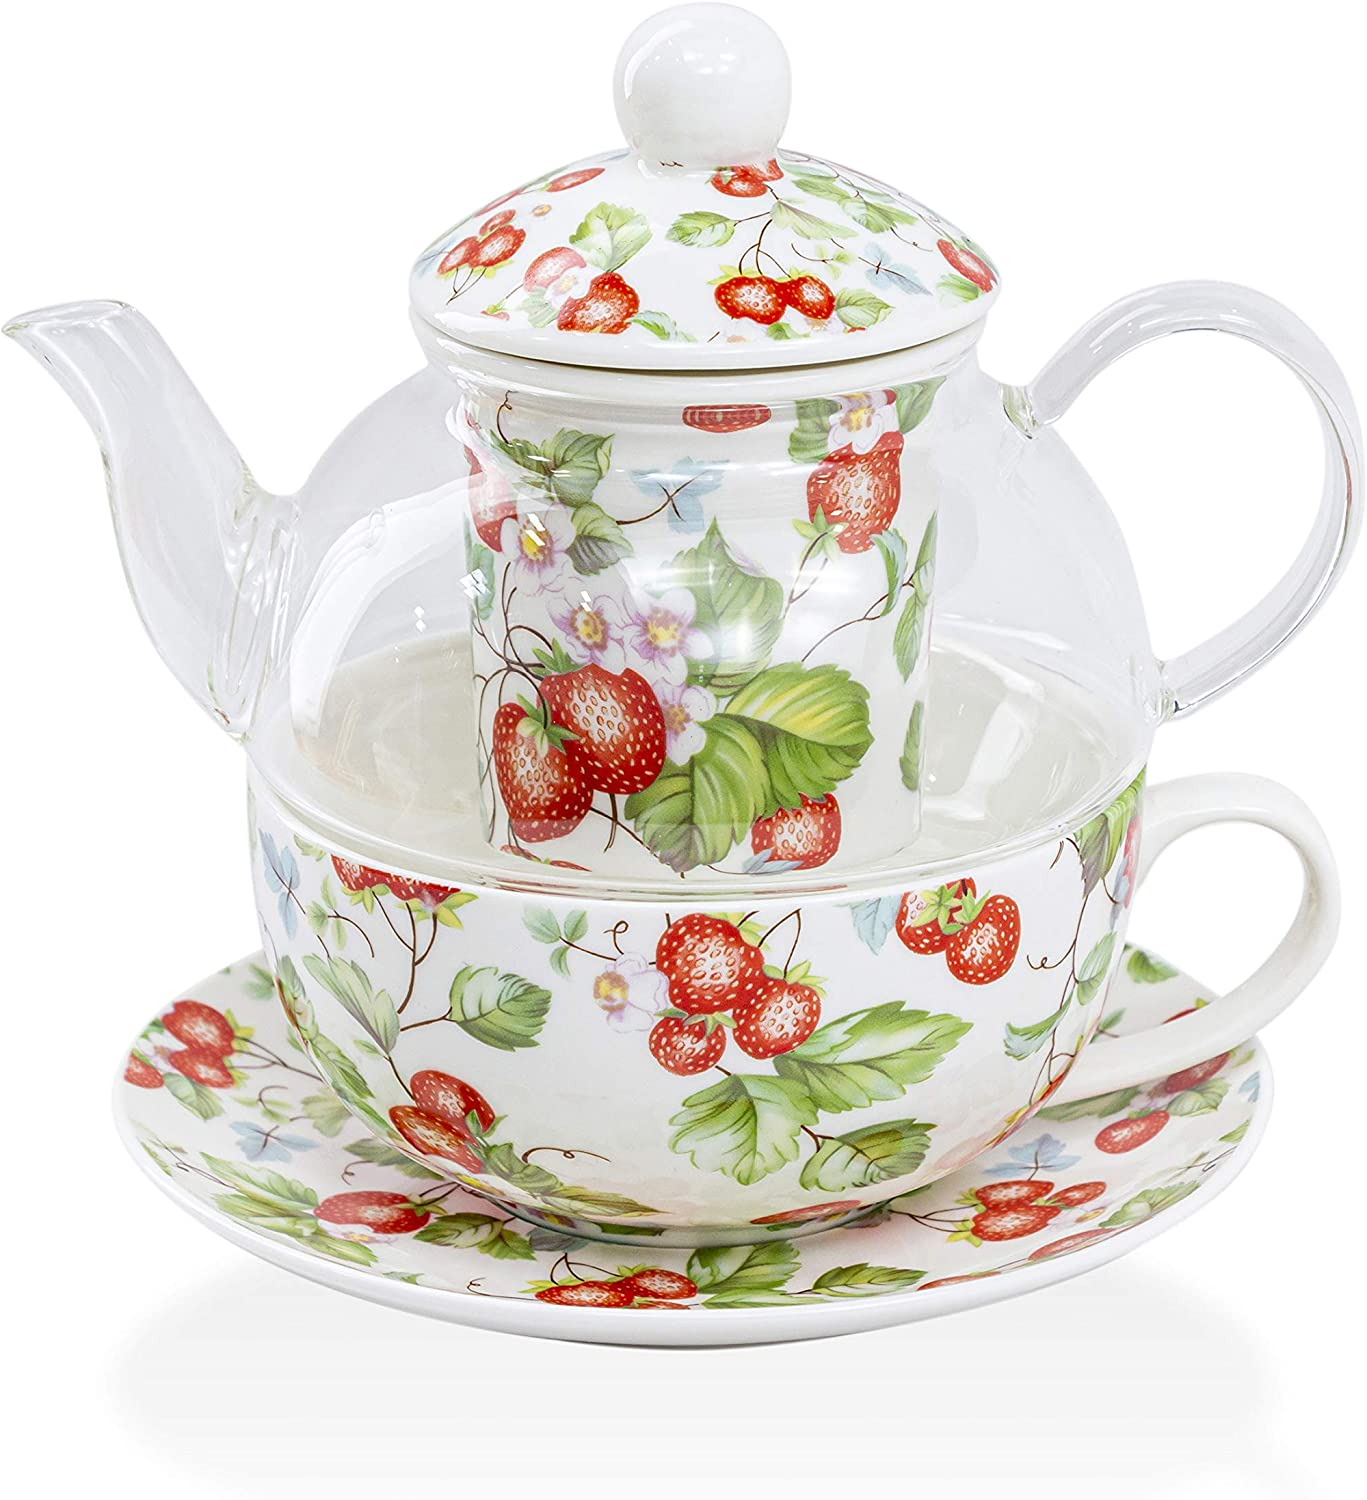 Grace Teaware 5-Piece Glass Porcelain 13-Ounce Tea For One With Infuser (Floral Strawberry Field